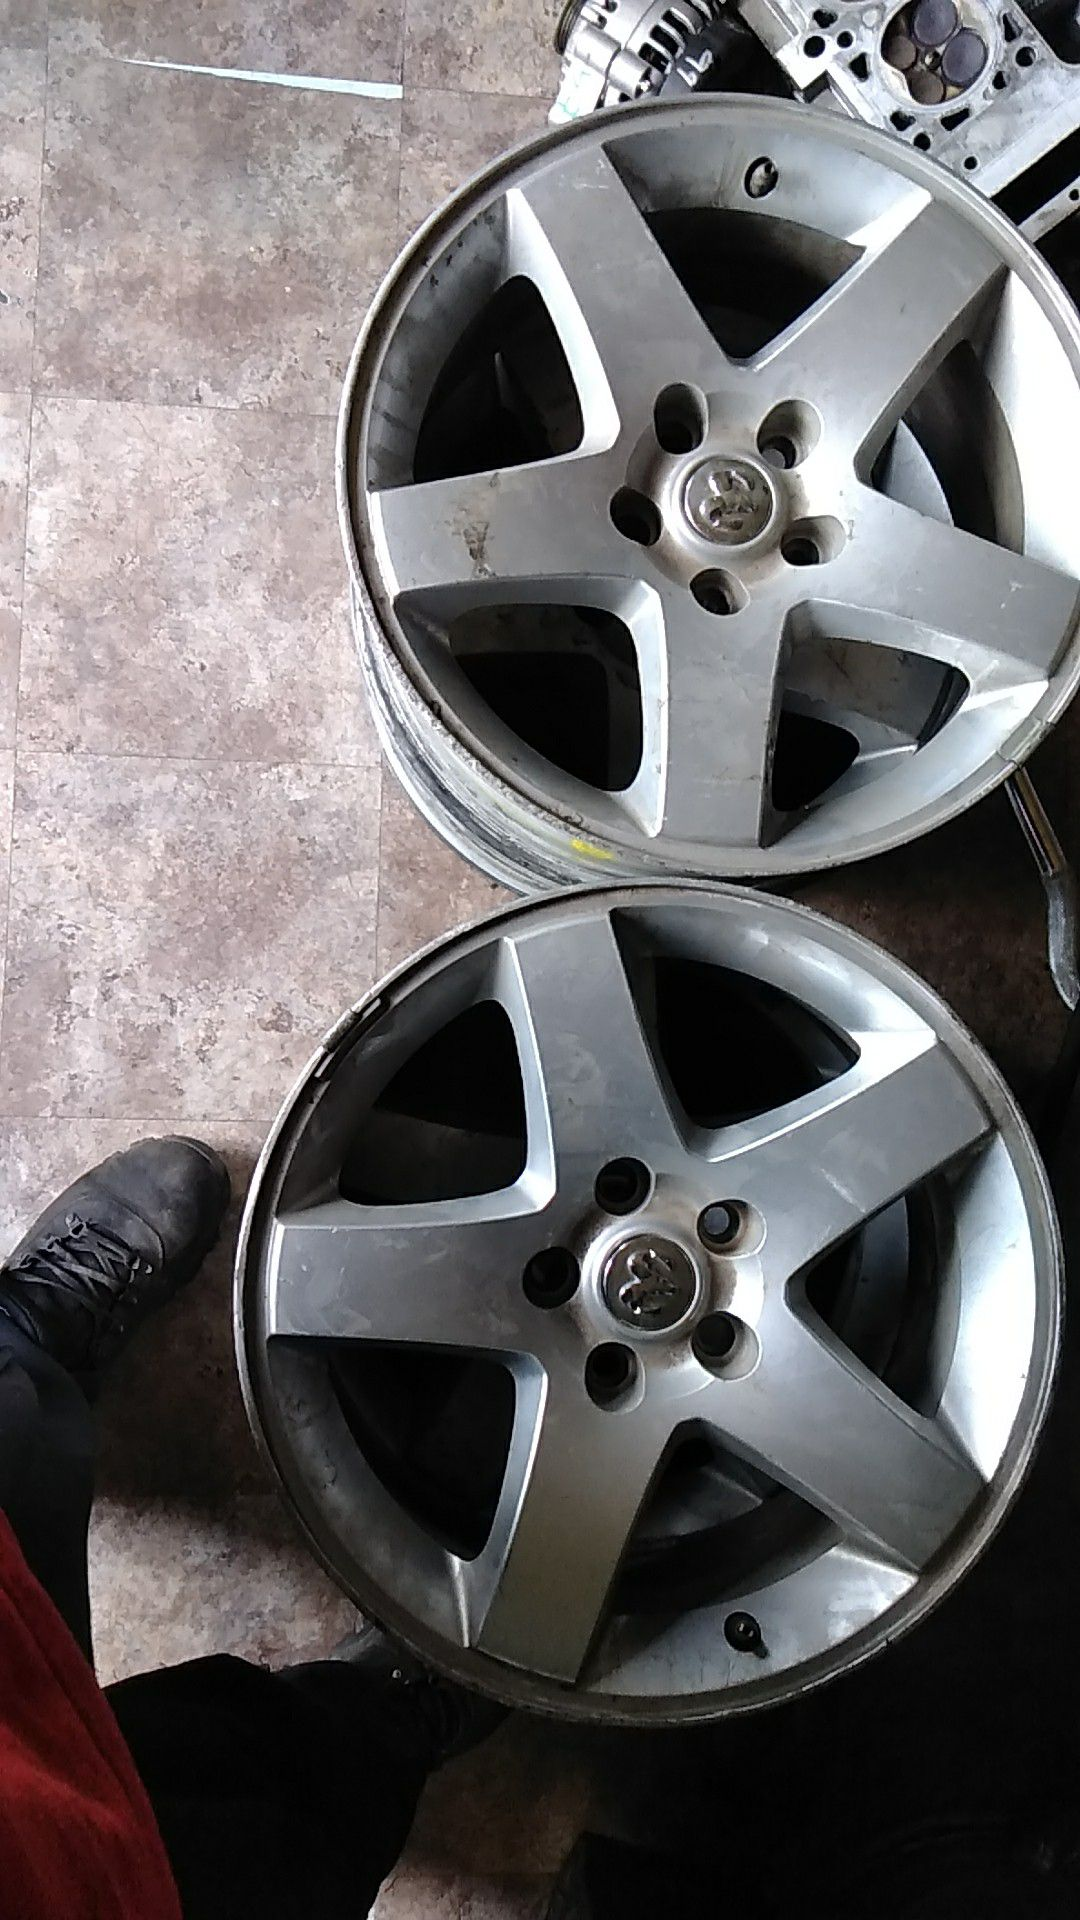 2008 charger set of wheels